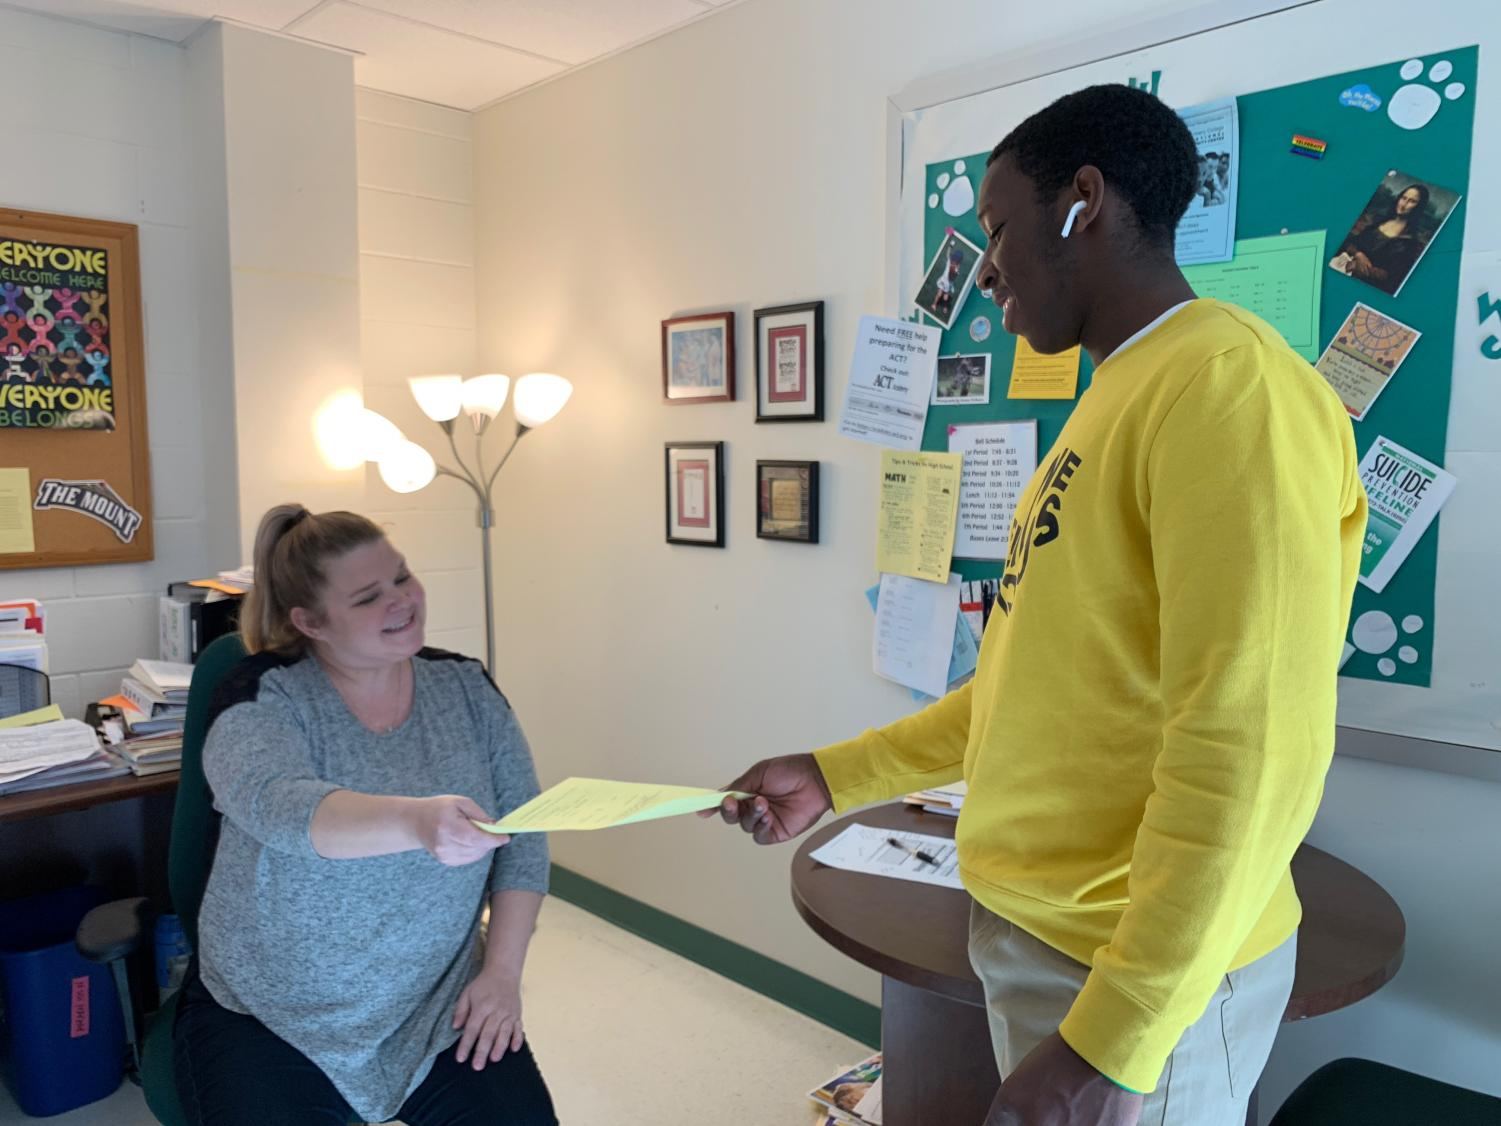 Senior DH Chris Manguelle hands a student transfer form to counselor Jamie Ahearn. Counselors try to help students new to WJ, but MCPS policy can make this difficult.